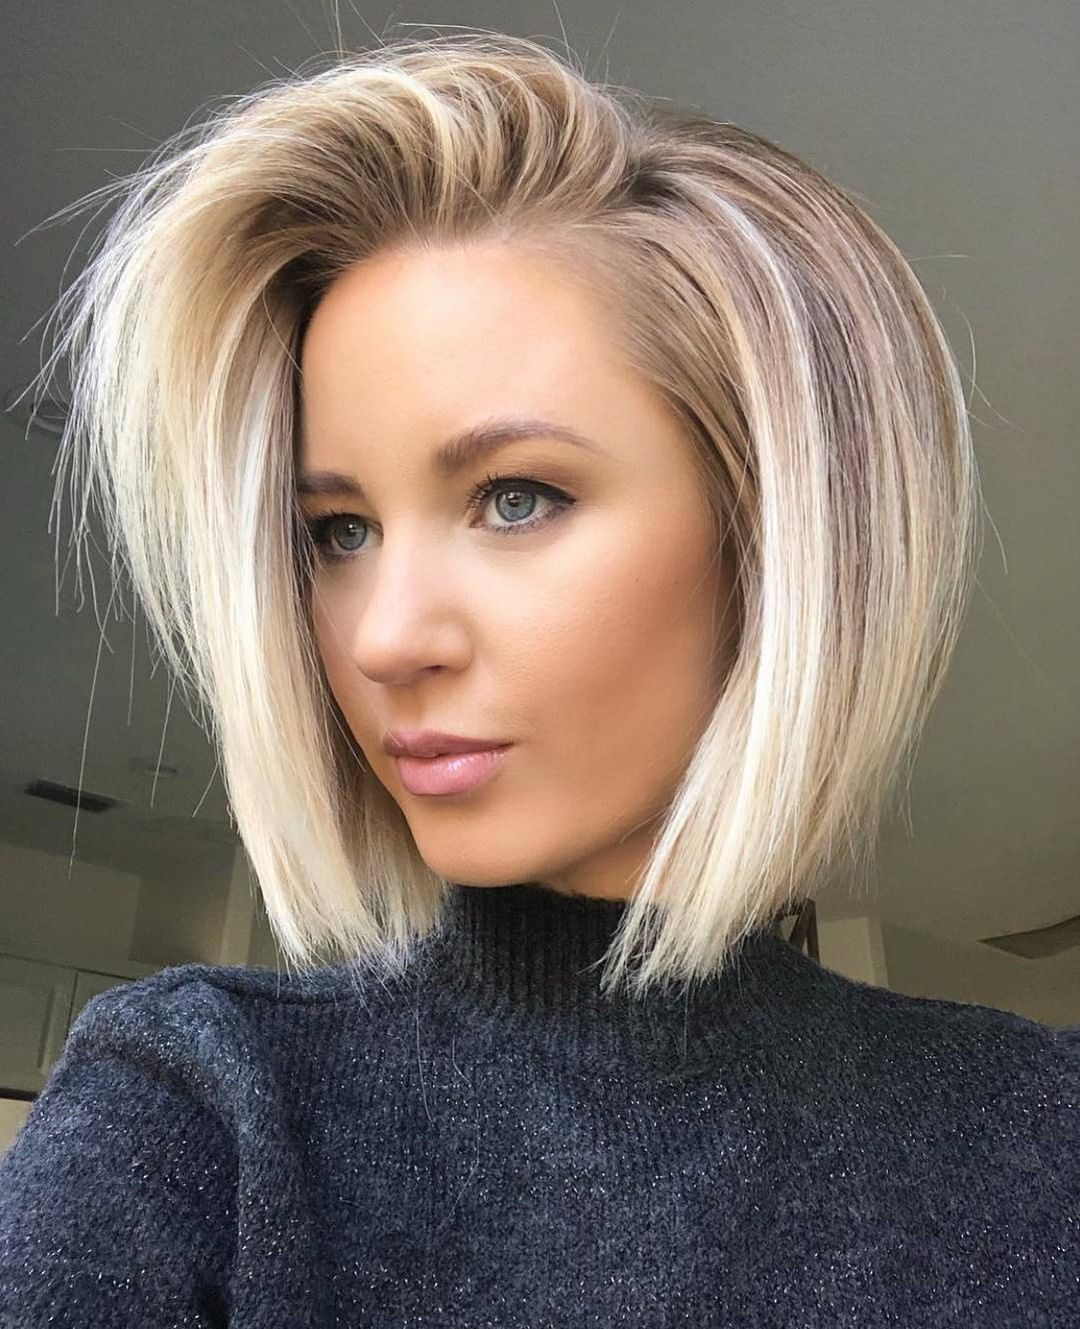 American Salon On Instagram Who Loves A Bob Hair Hairandbeautybyjen December Instagram S 1 And Facebook Hair Styles Thick Hair Styles Bob Hairstyles